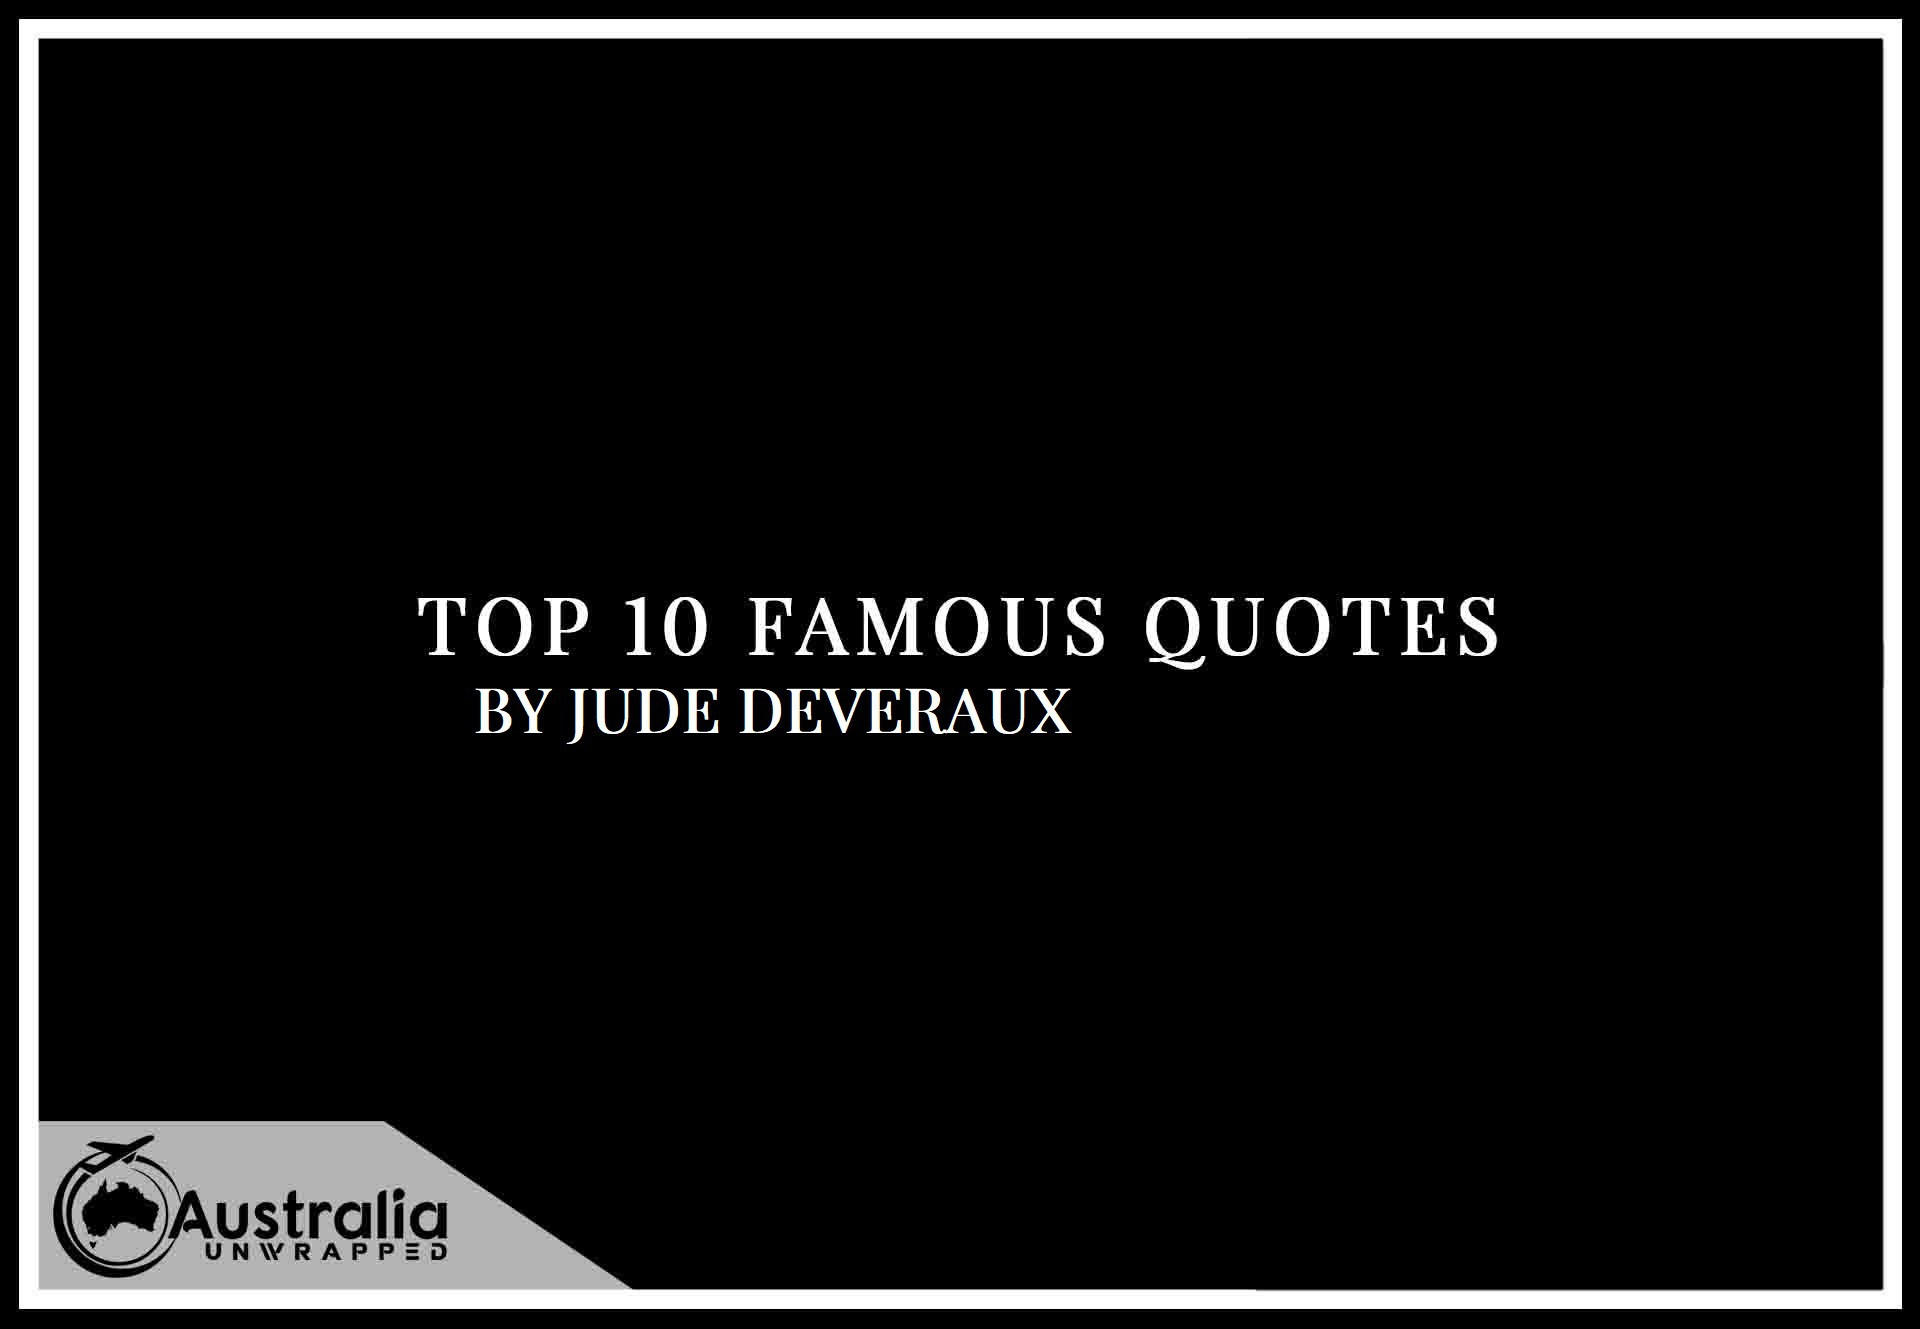 Top 10 Famous Quotes by Author Jude Deveraux